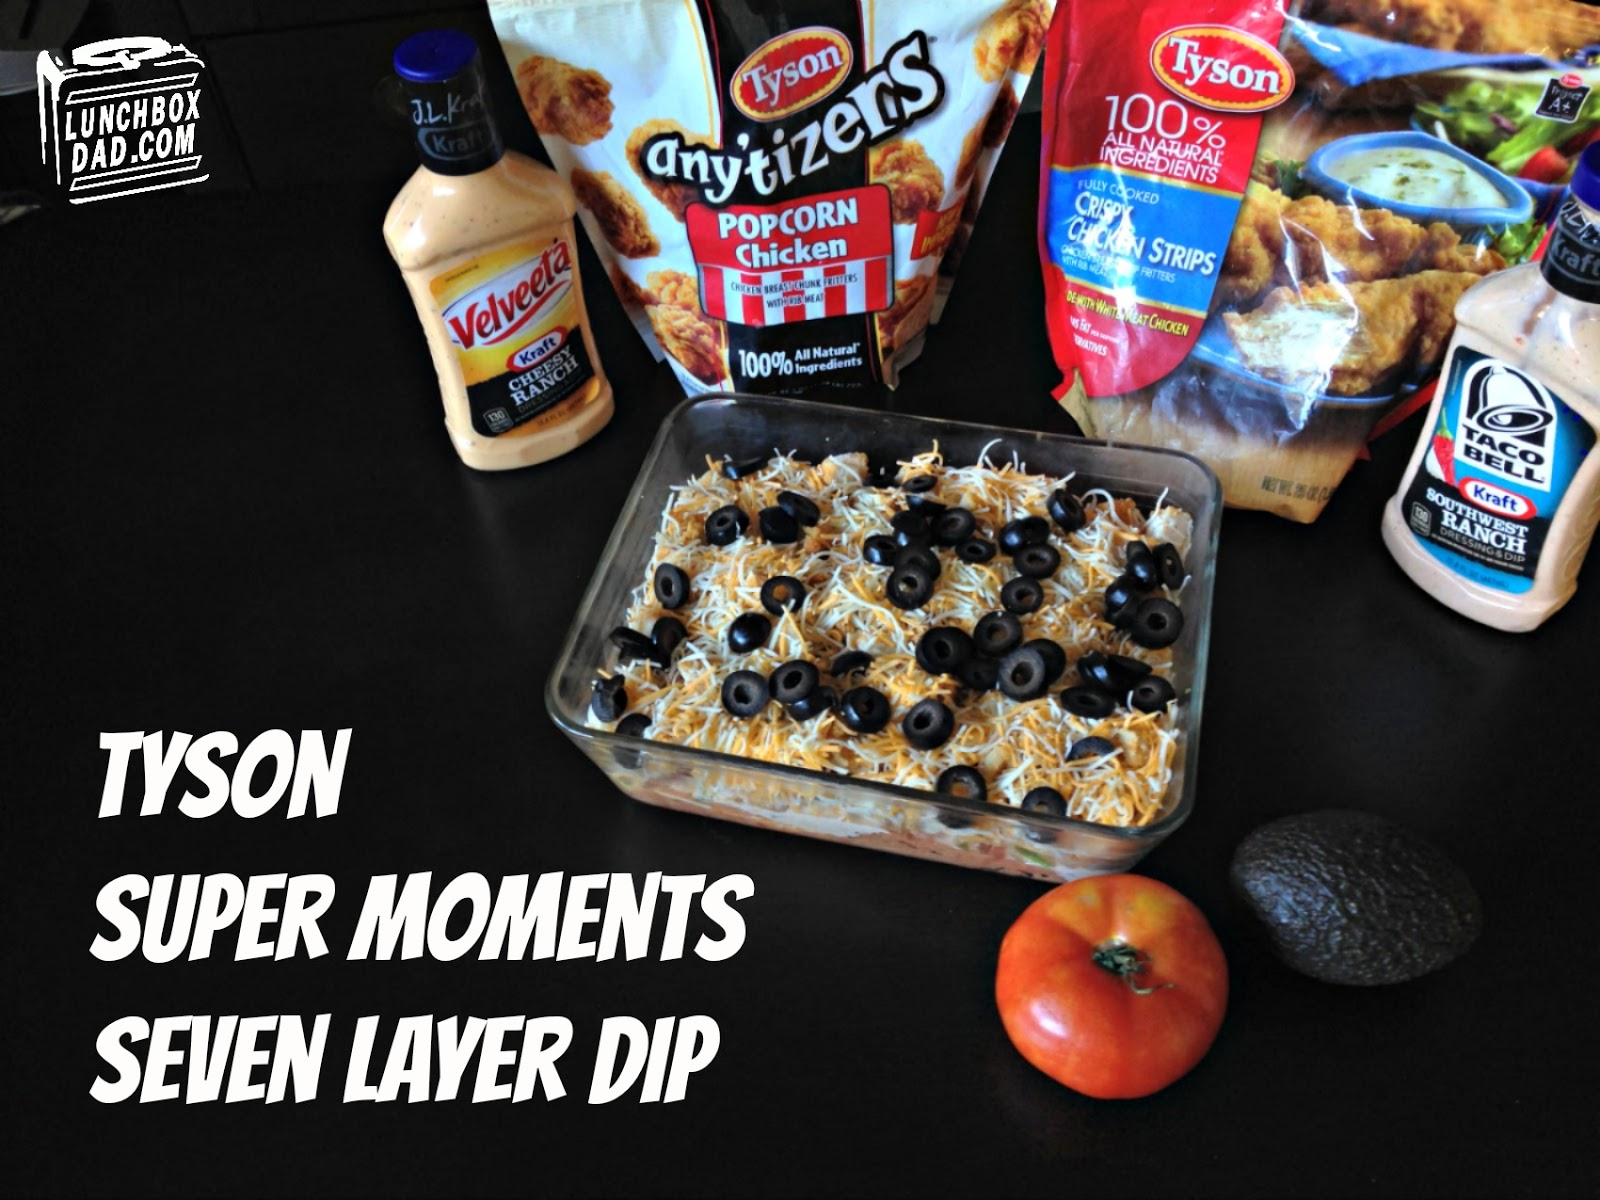 Tyson Super Moments Seven Layer Dip #AD #SuperMoments #cbias